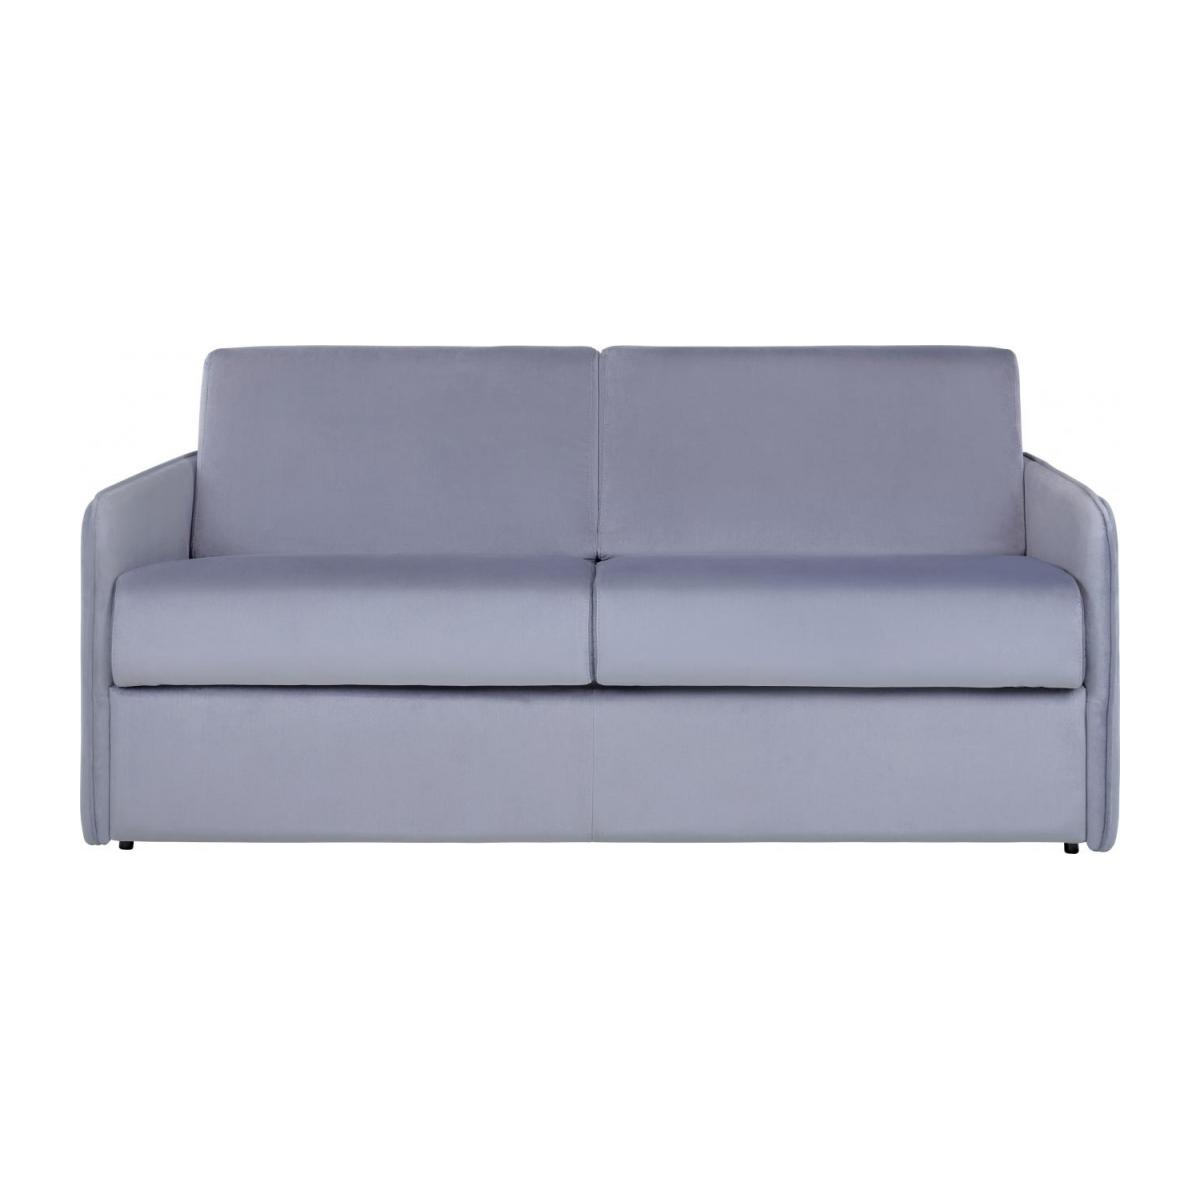 Grey velvet 3 seat fold-out sofa n°4